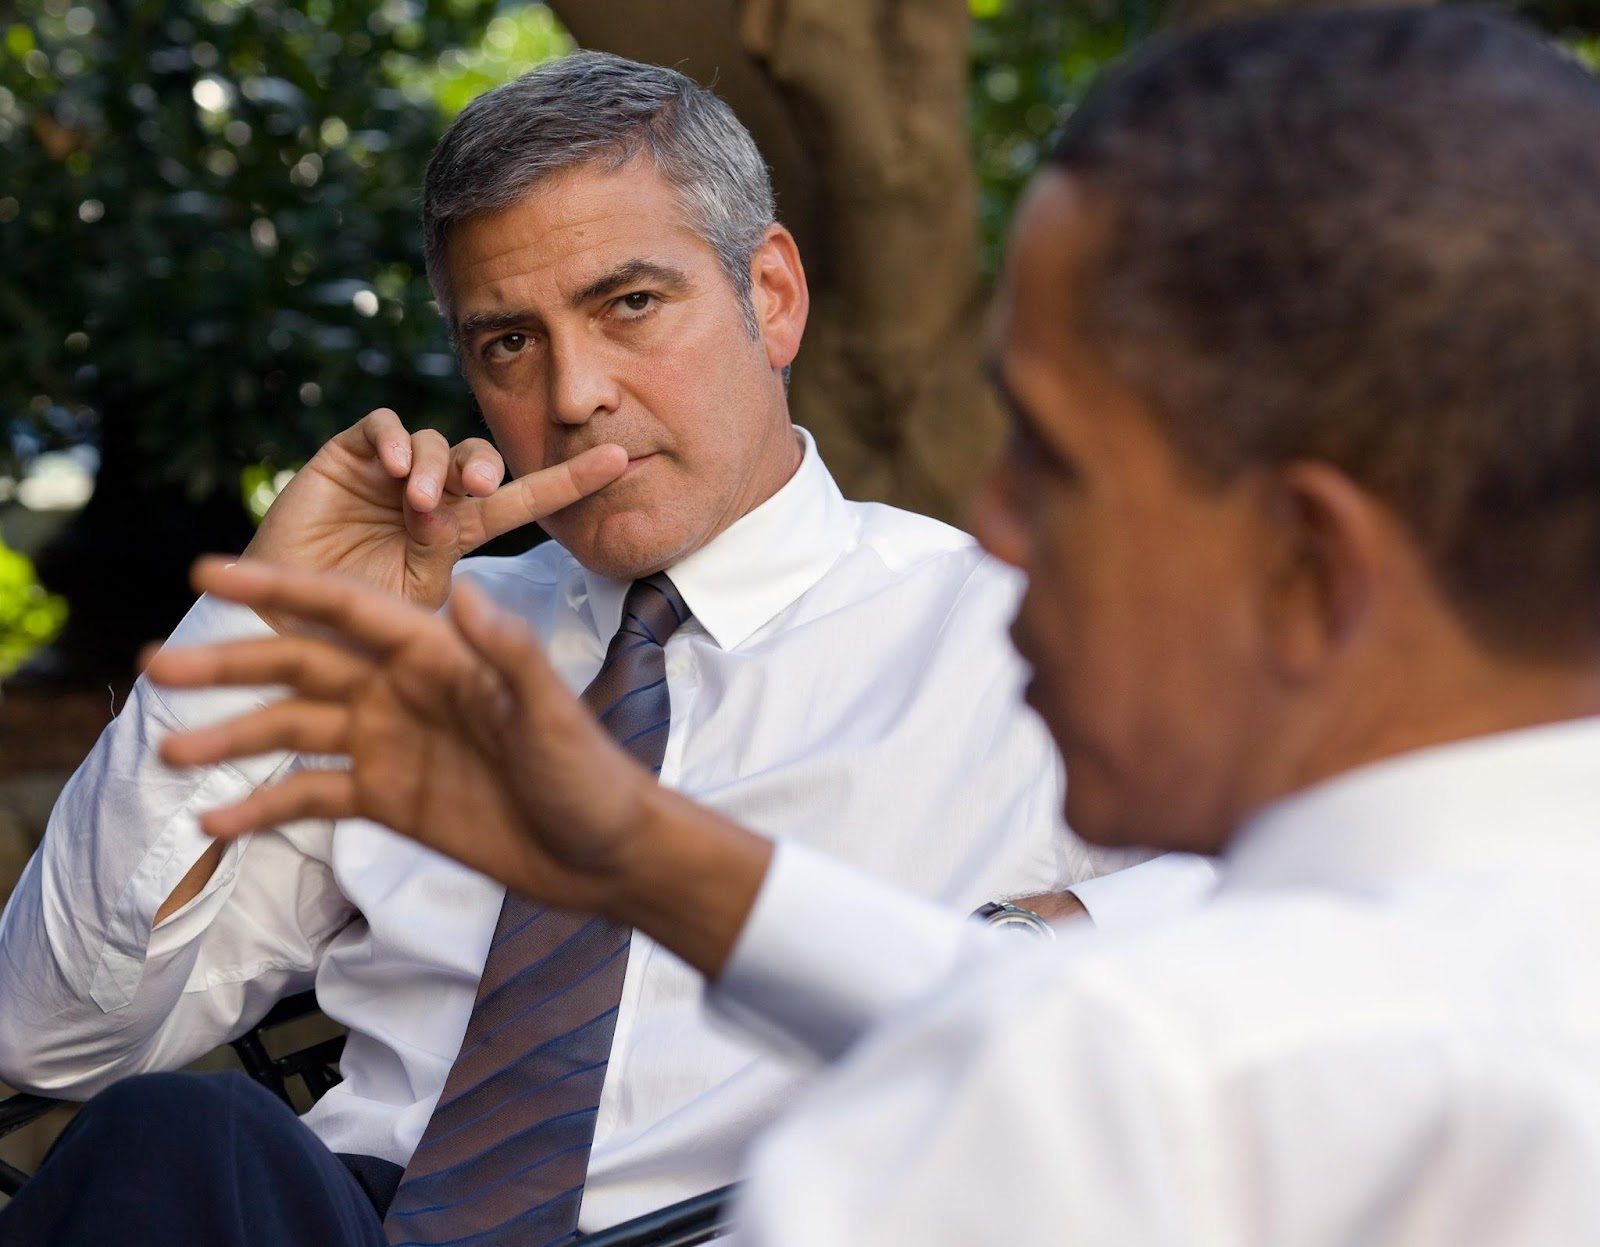 A close-up of George Clooney as he listens to President Barack Obama who is out-of-focus in the bottom of the image. The two are discussing the ethics of using machine learning to aid the Sudanese.